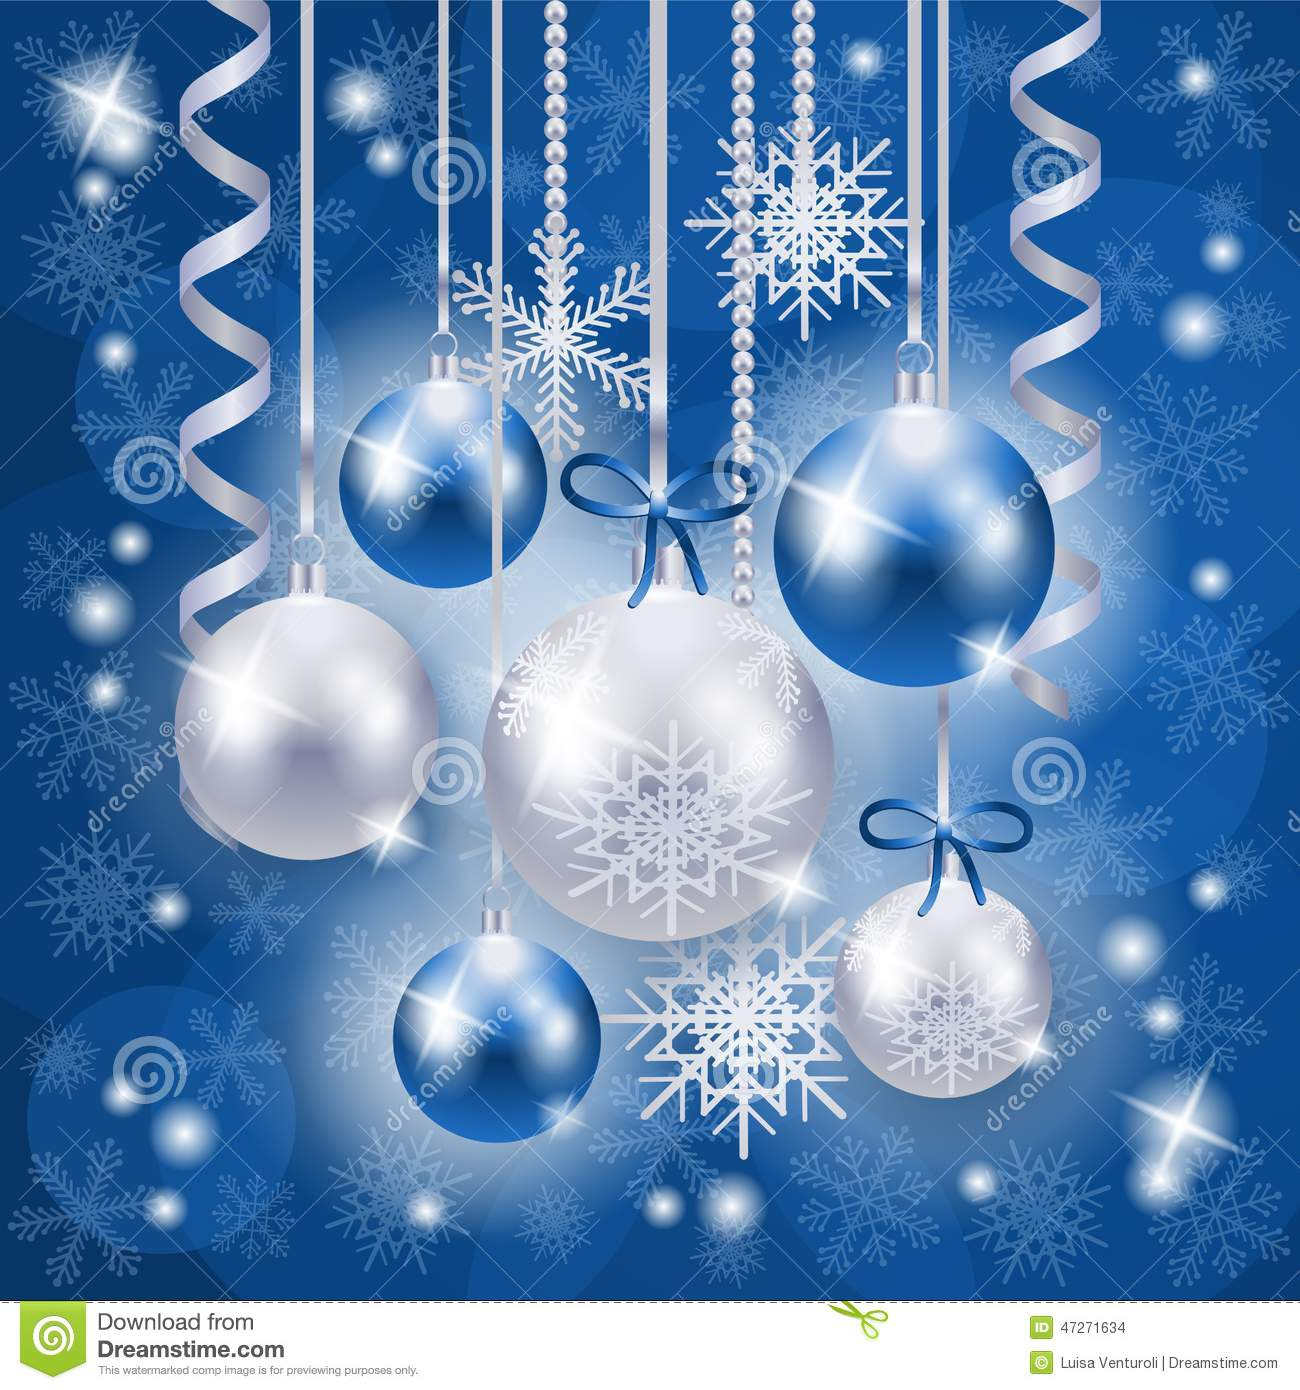 christmas background in blue and silver on snowflakes background - Blue And Silver Christmas